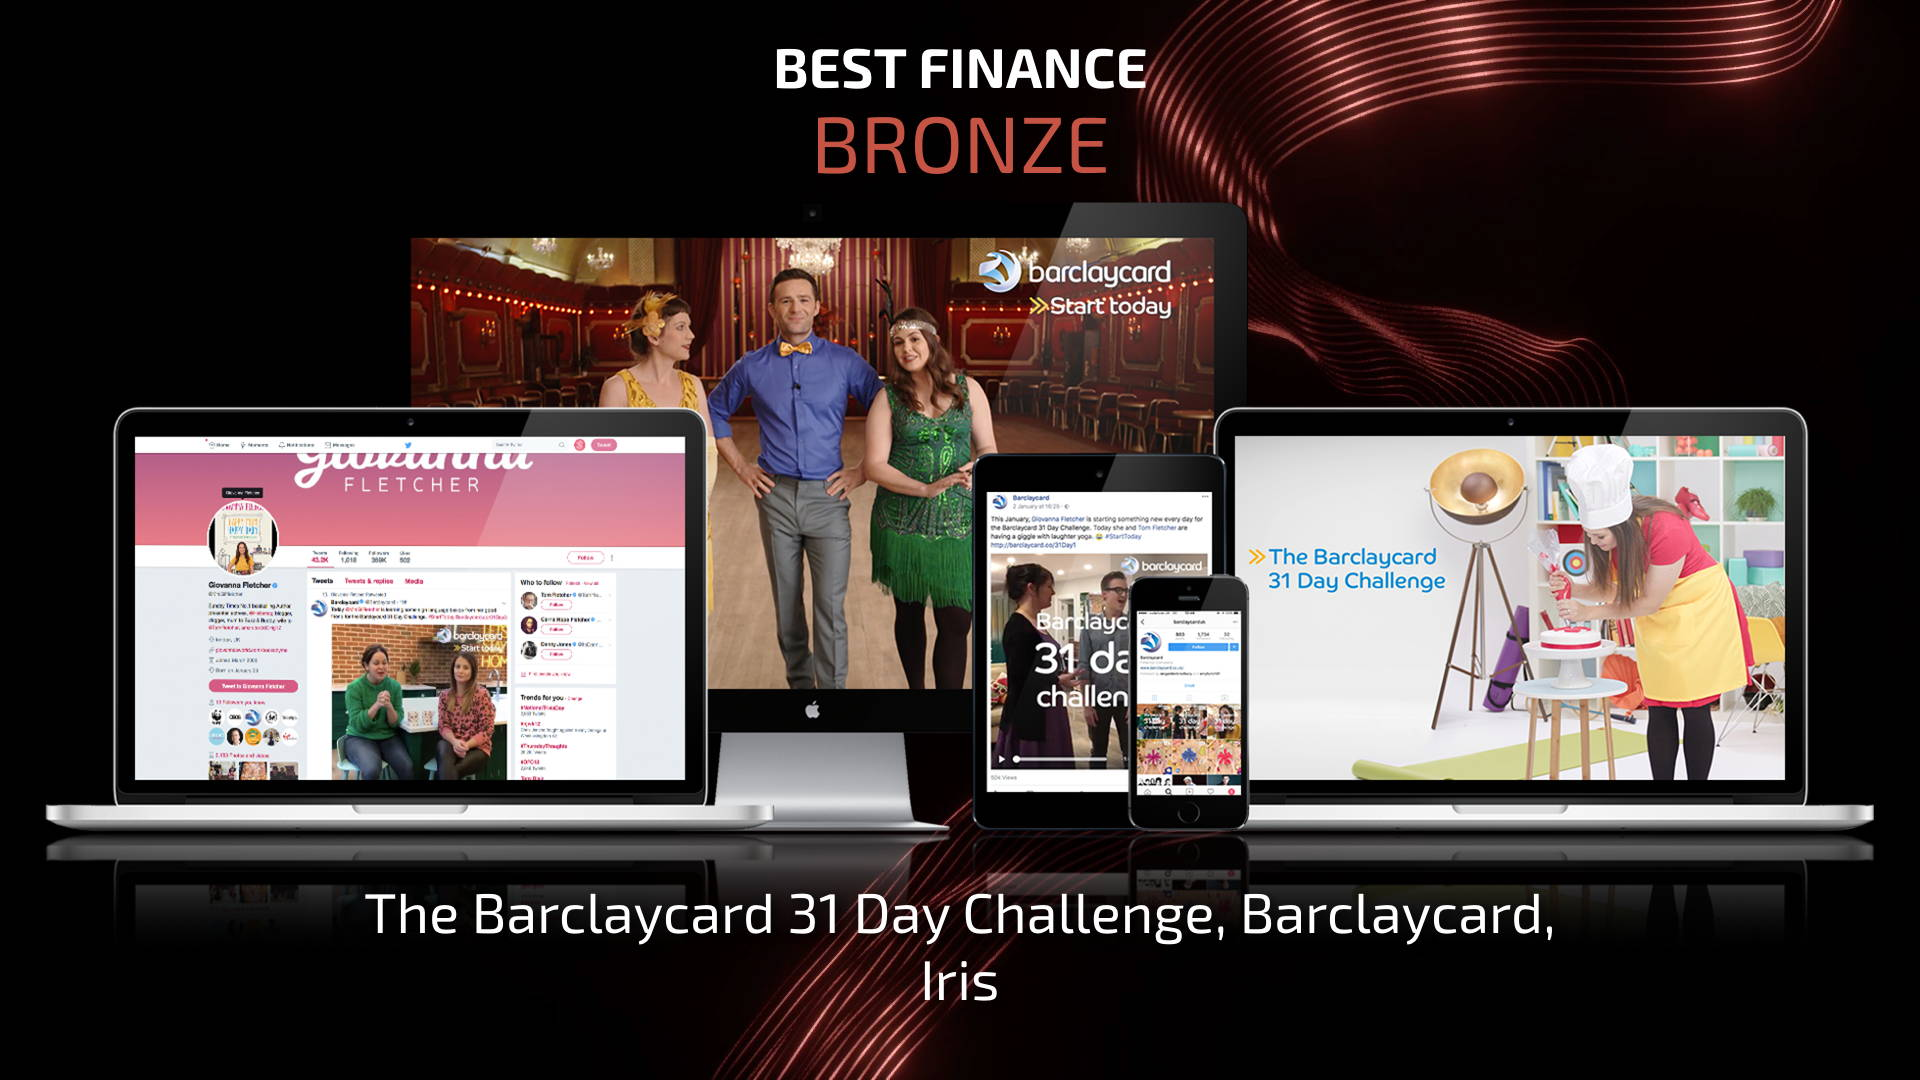 Best Finance - Bronze